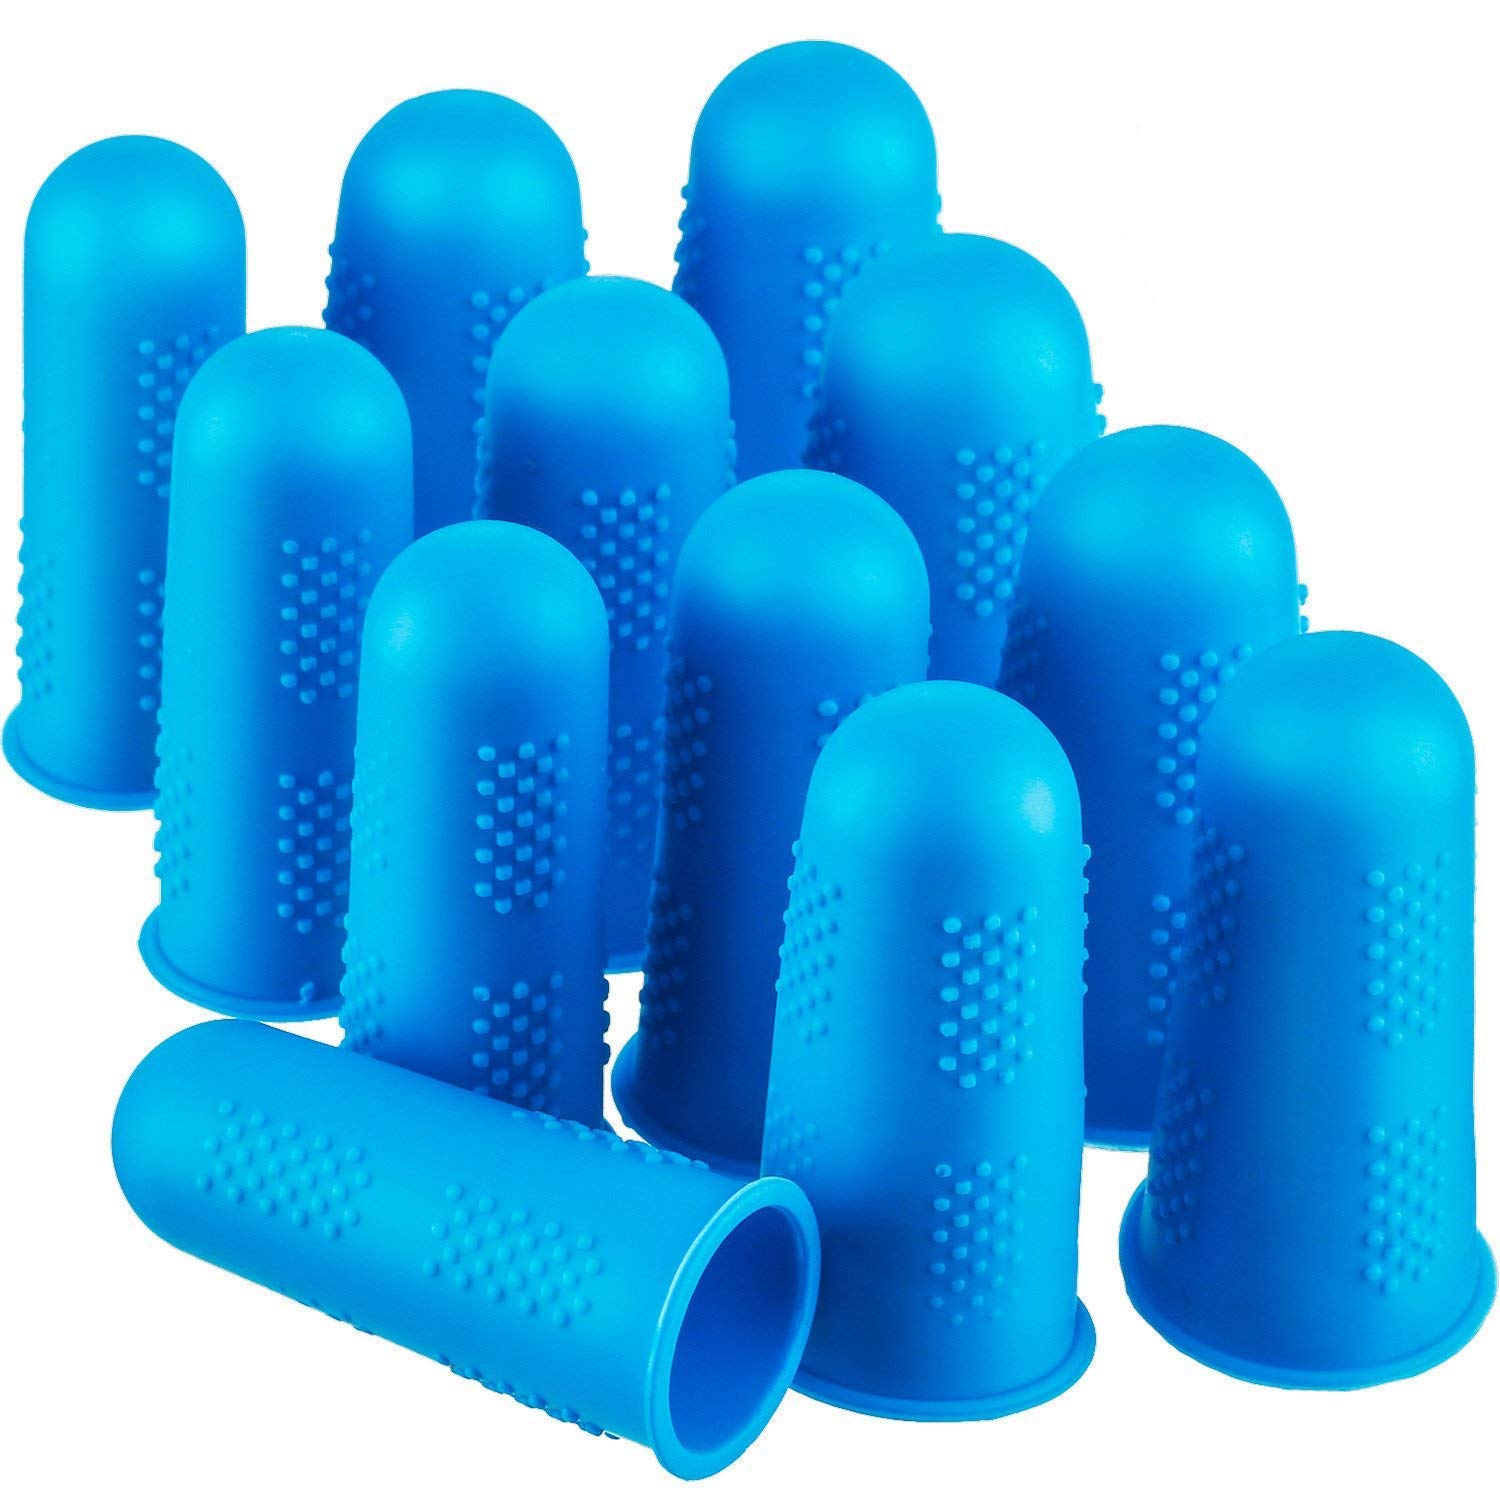 12 Pieces Finger Cots Silicone Finger Protection Covers Caps Finger Tip Protectors Finger Guards Heat Resistant Finger Sleeves 3 Sizes (Blue)